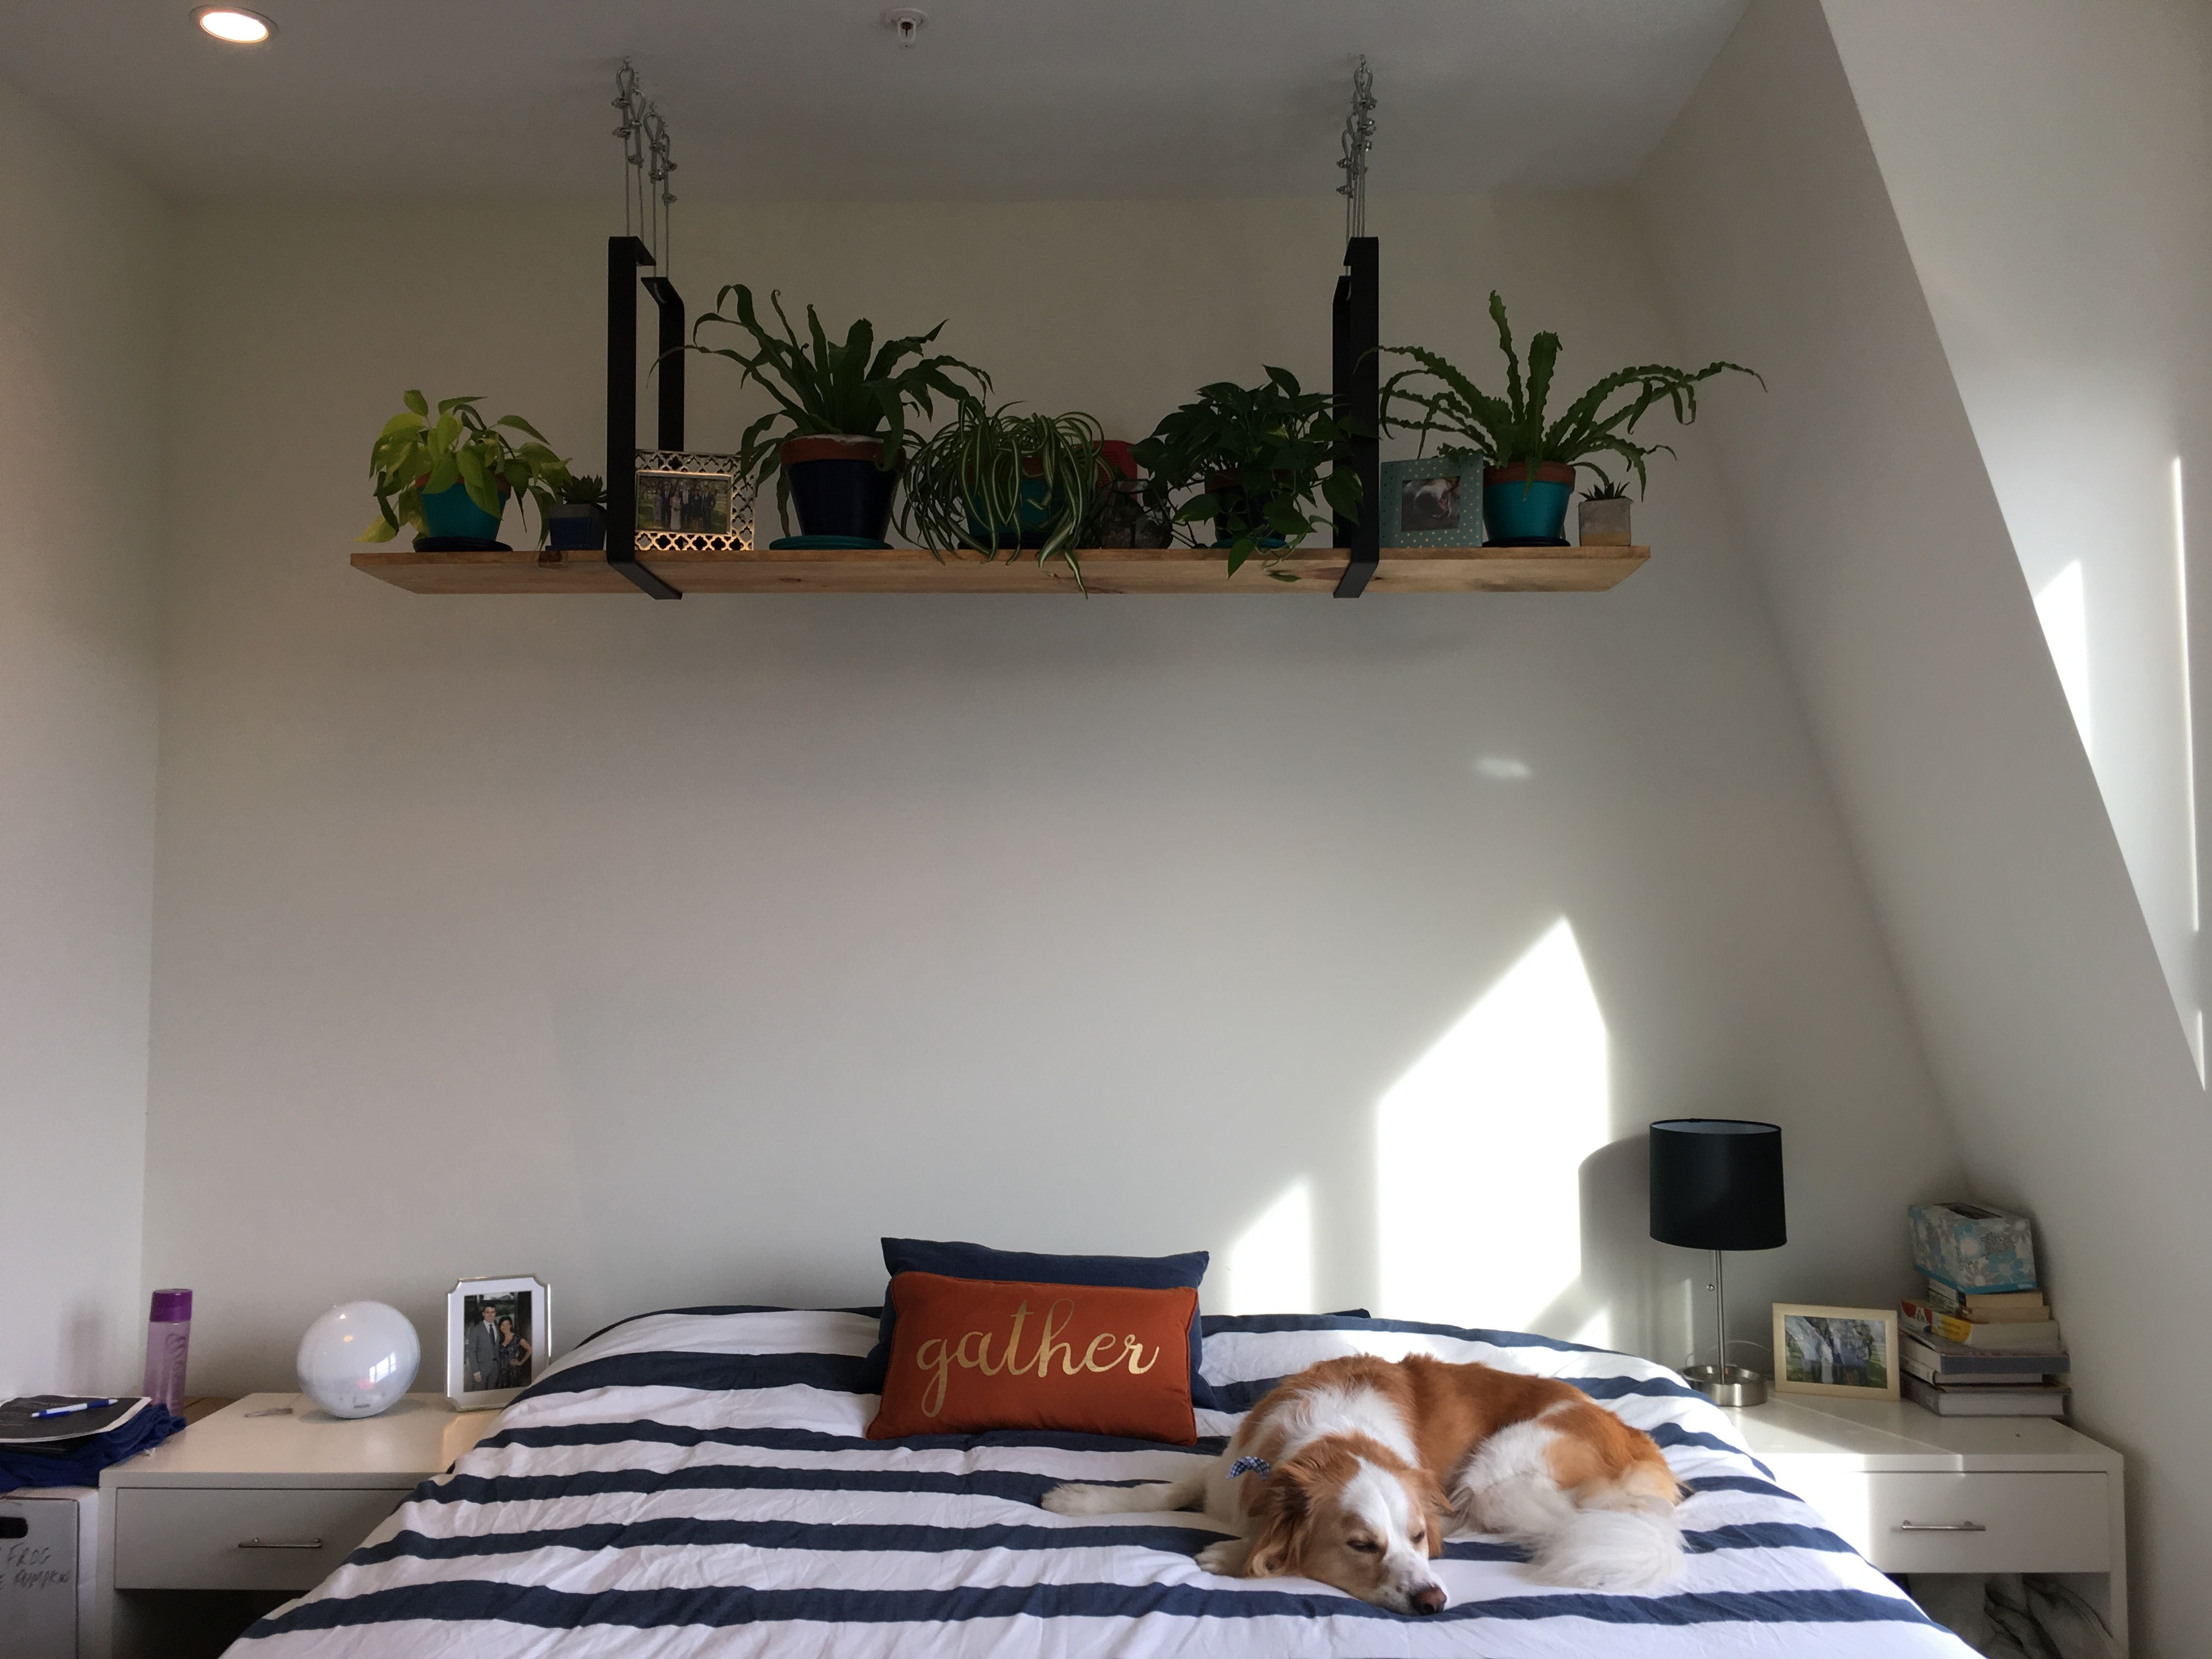 Diy Hanging Ceiling Shelf Using Iron Posts Wire Cabling And A